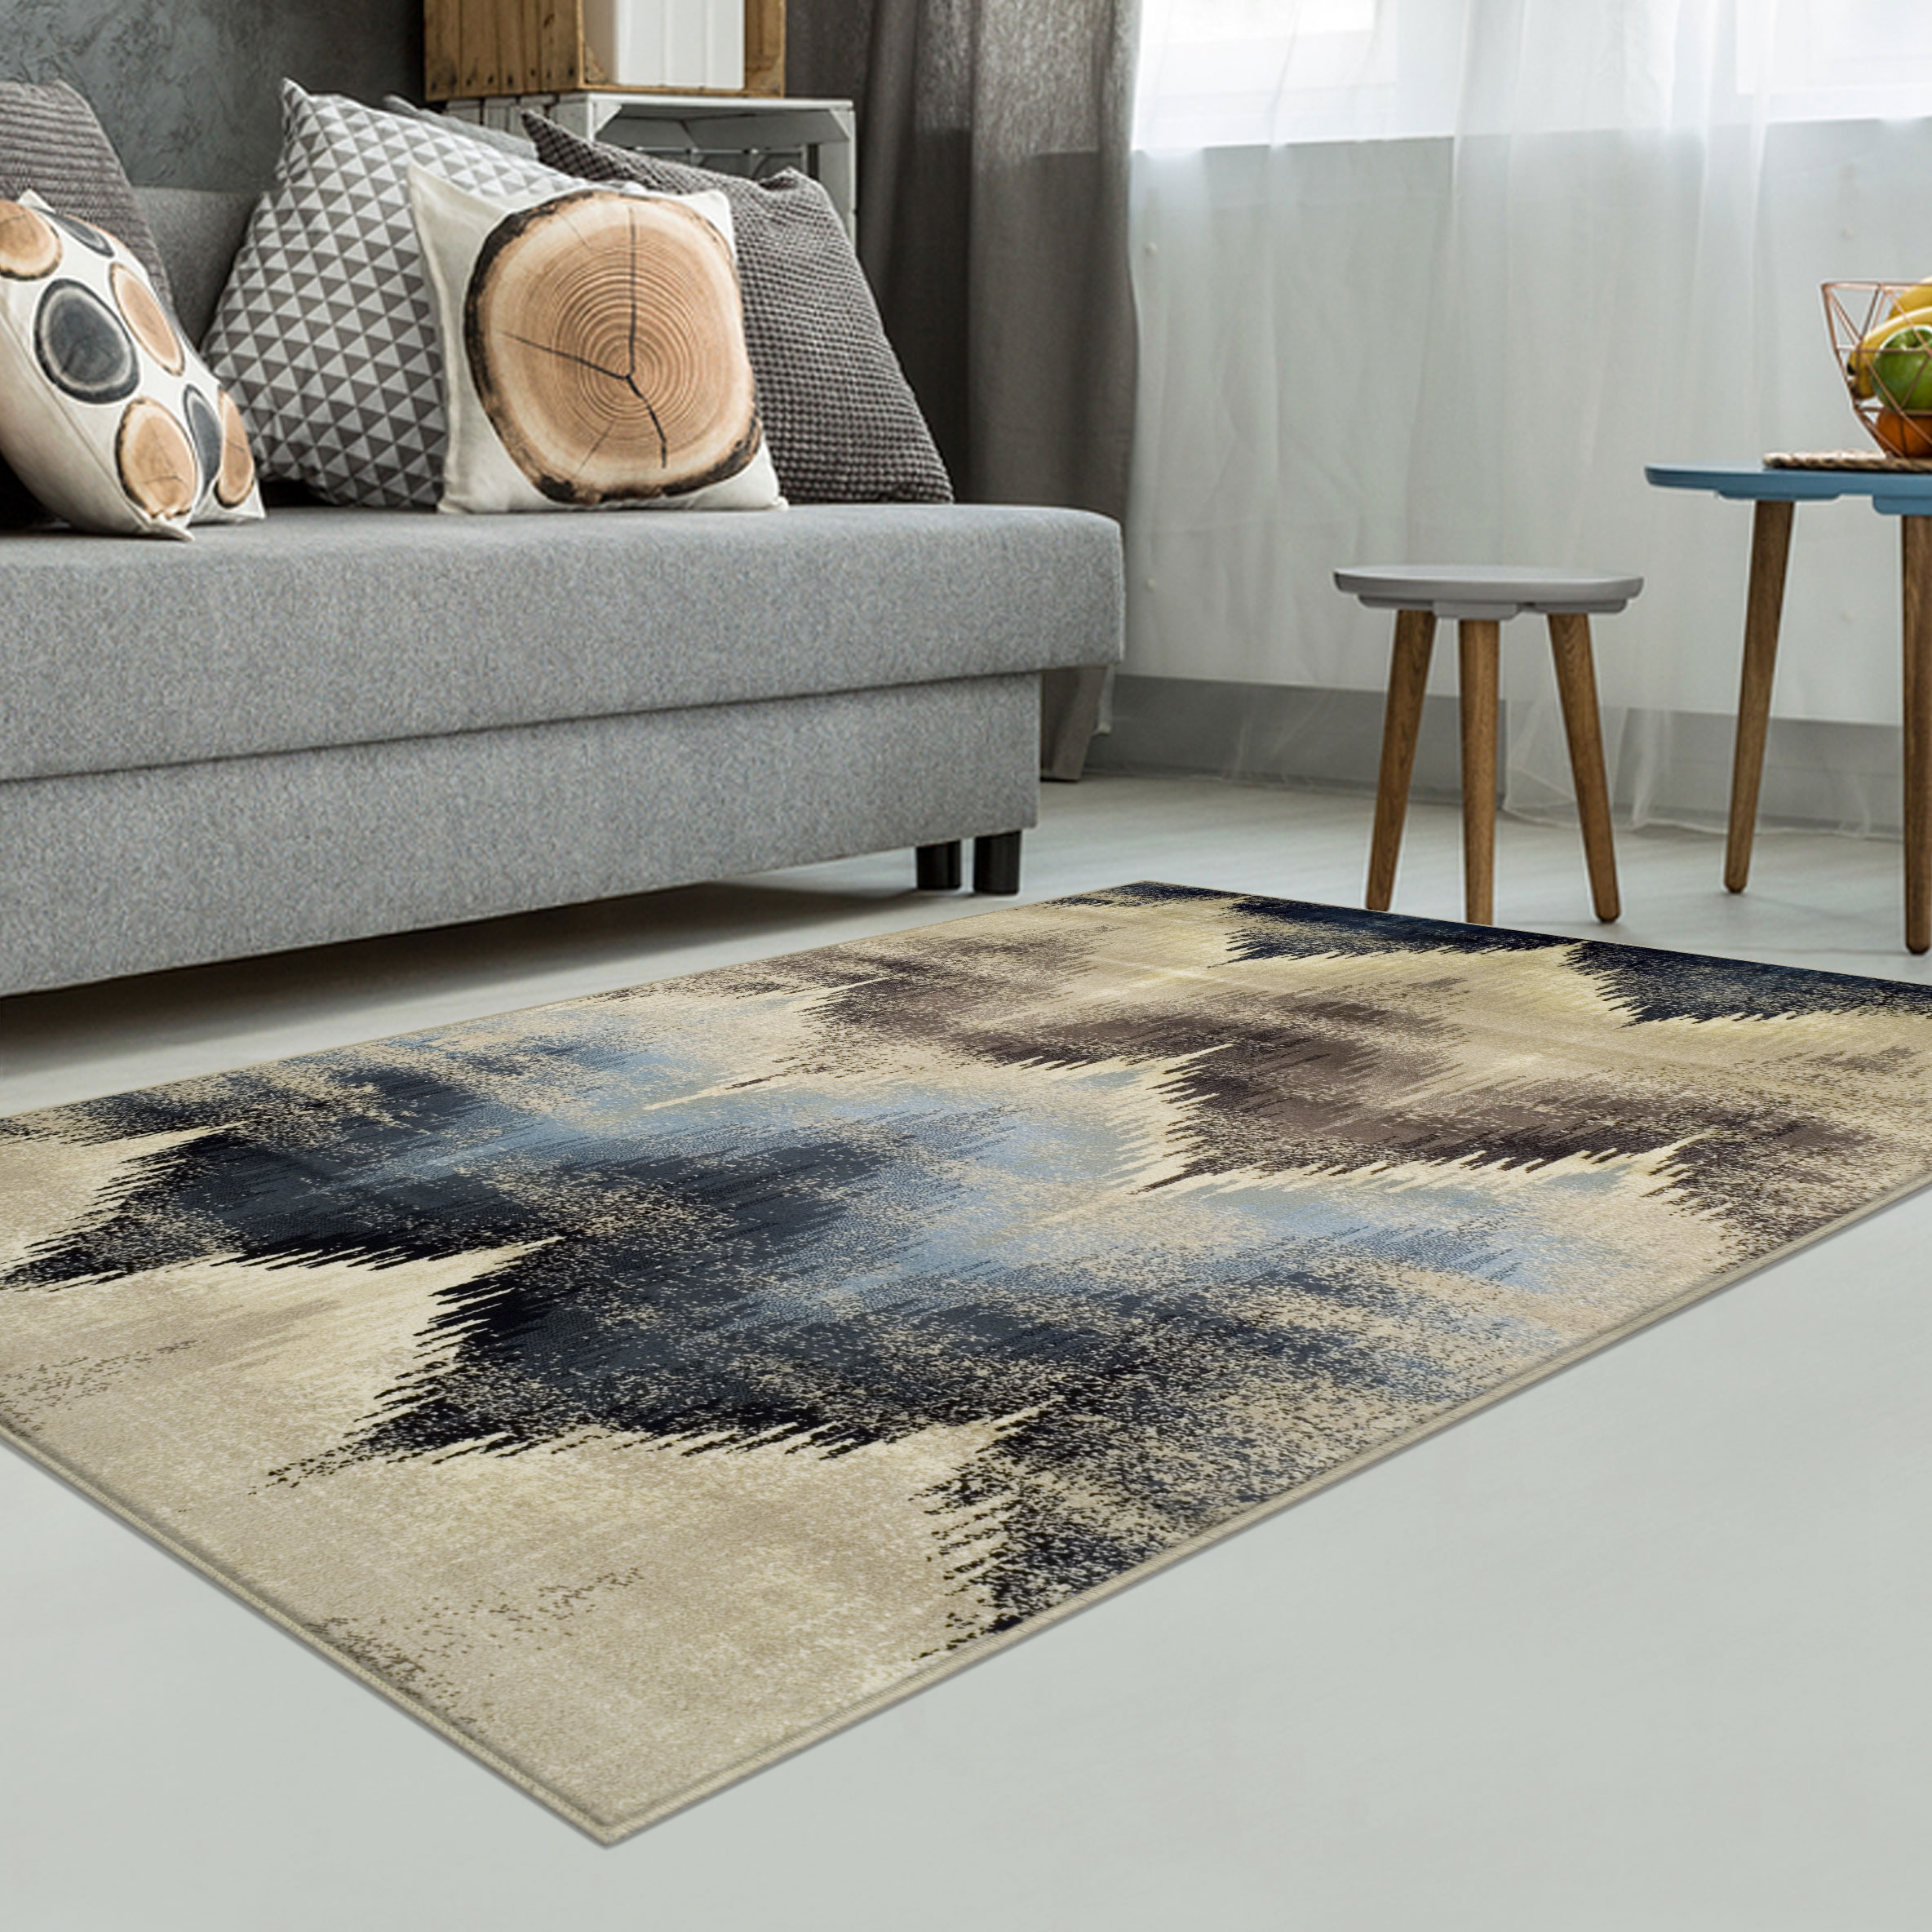 Superior Cadwell Collection with 10mm Pile and Jute Backing, Moisture Resistant and Anti-Static Indoor Area Rug